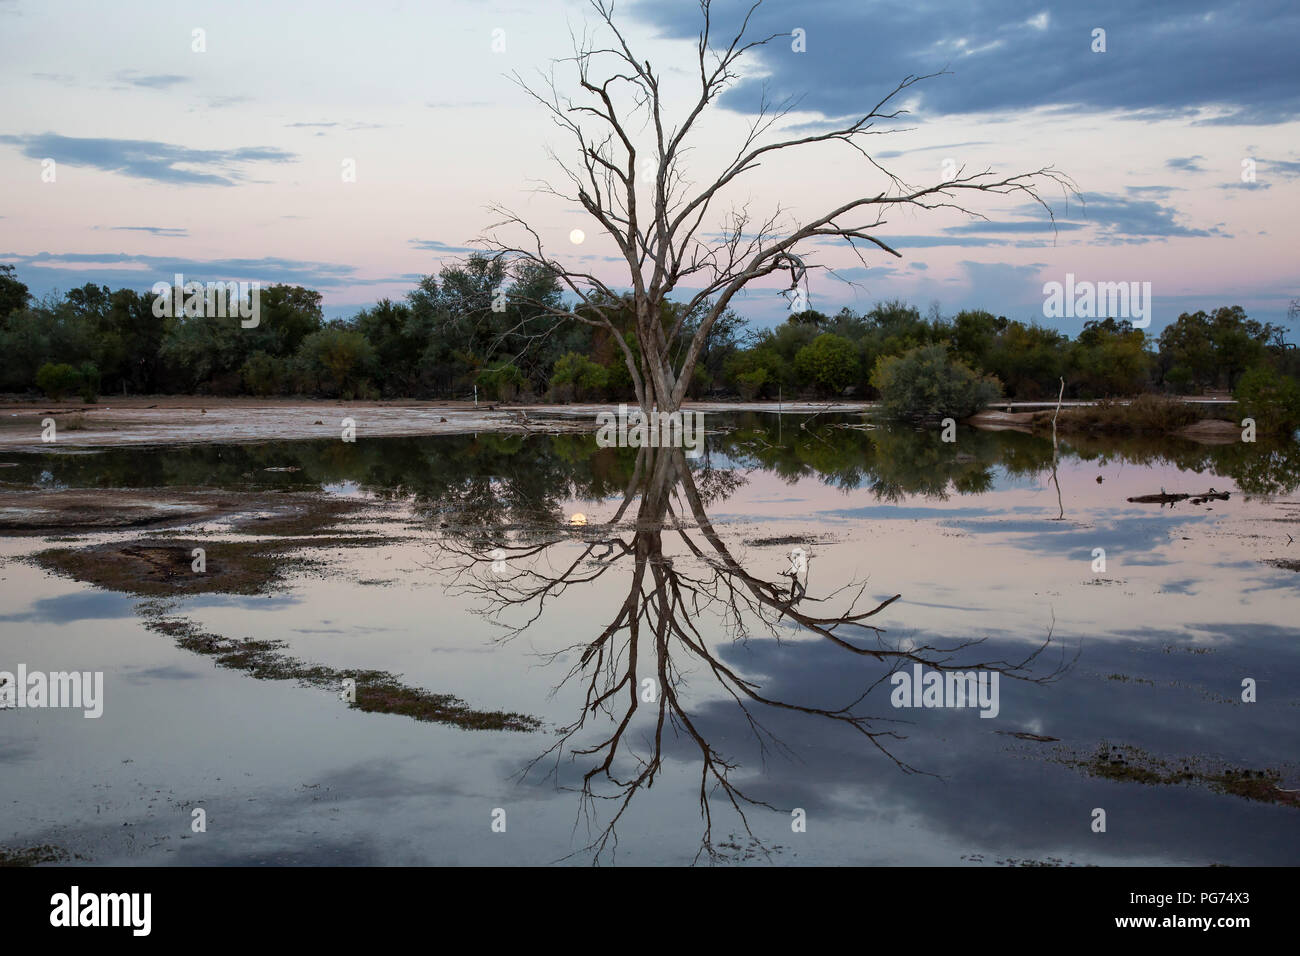 Lake, dead tree and reflections at sunset in the Australian outback - Stock Image